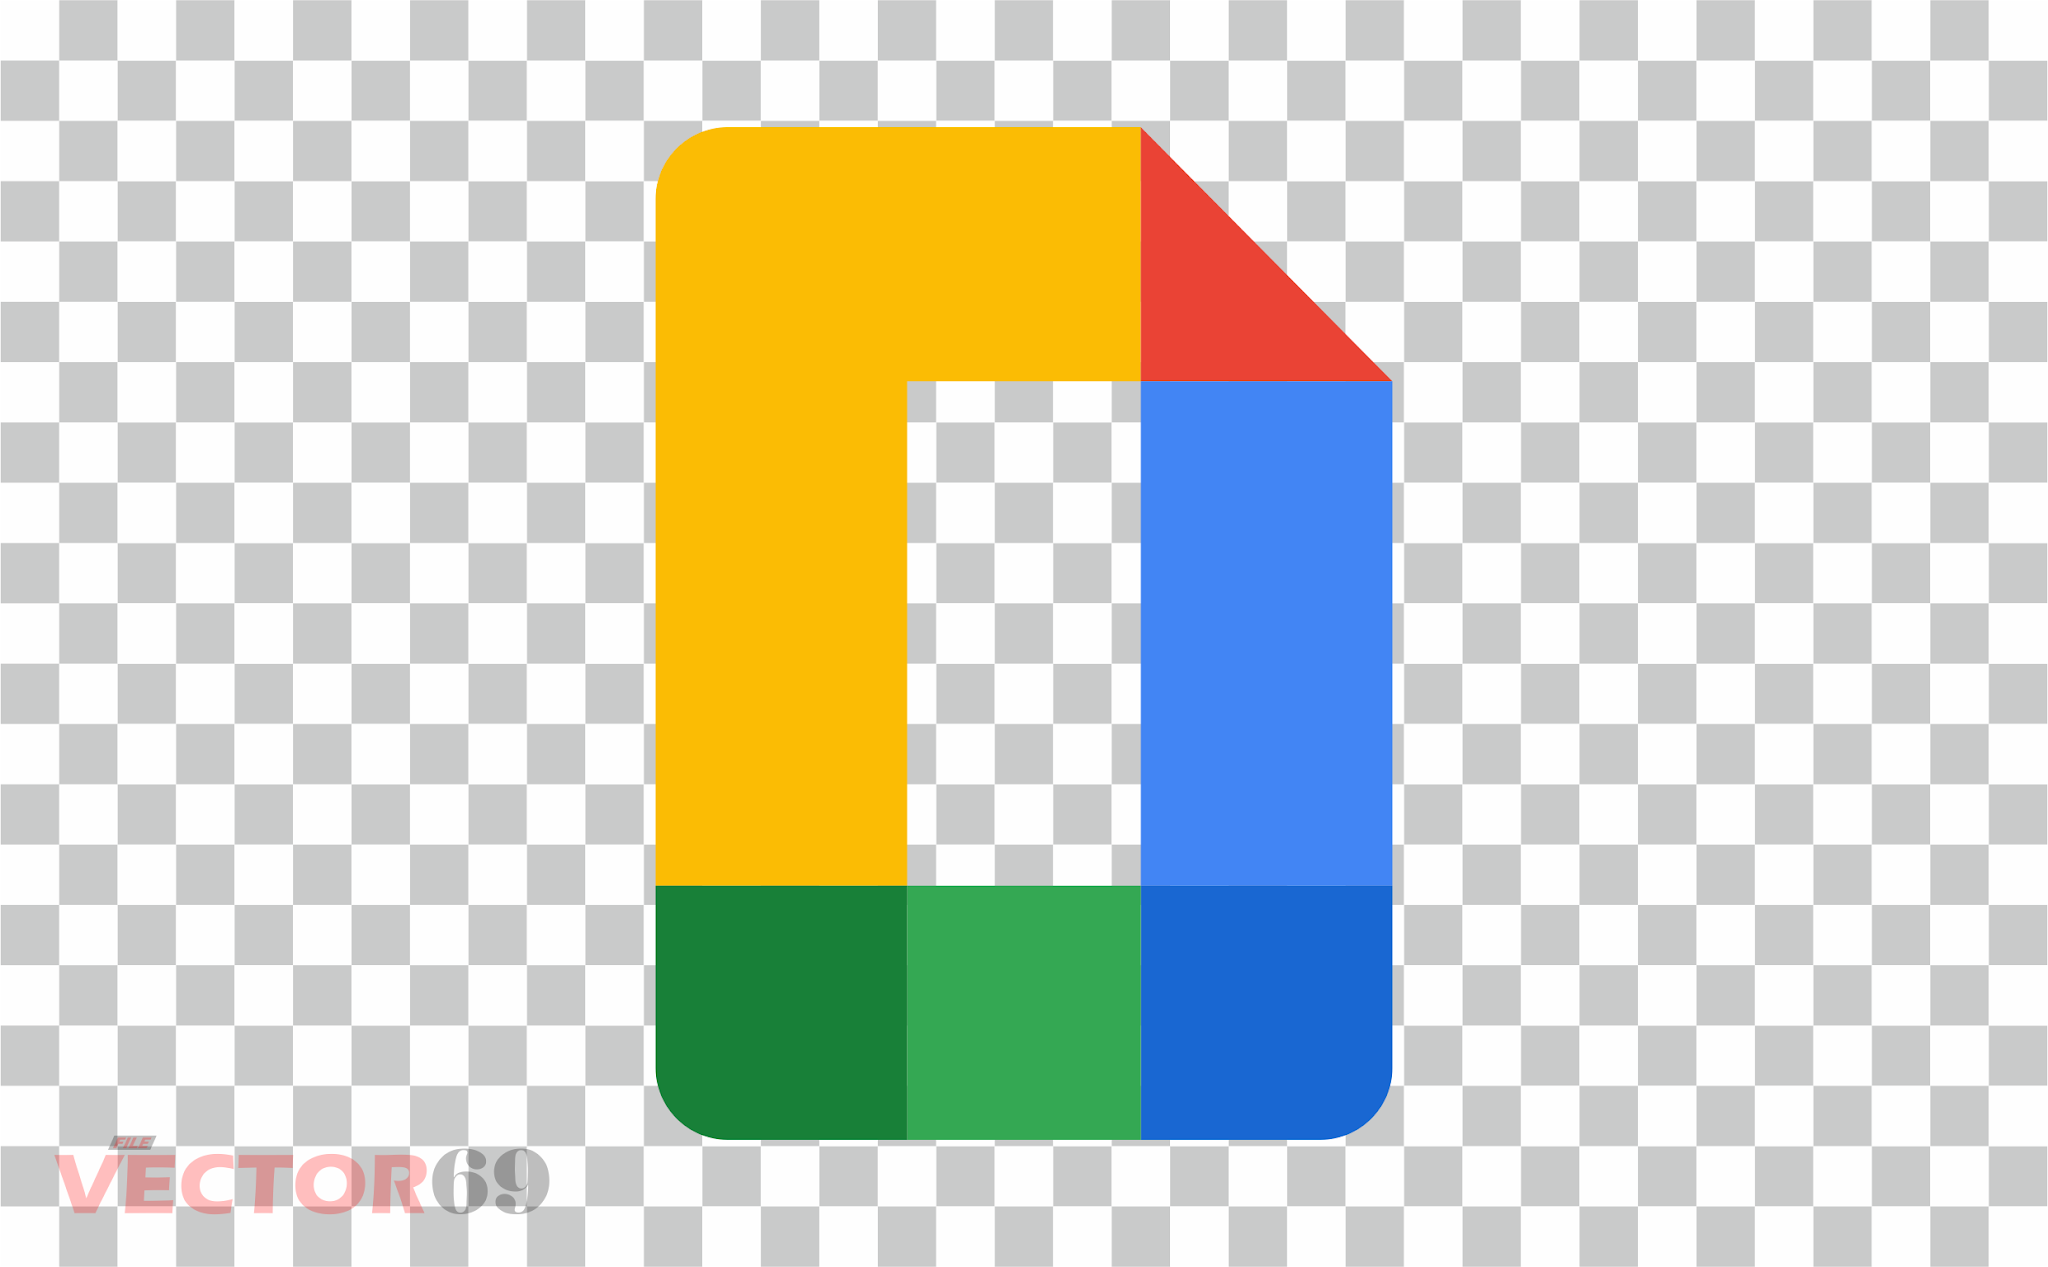 Google Docs New 2020 Logo - Download Vector File PNG (Portable Network Graphics)